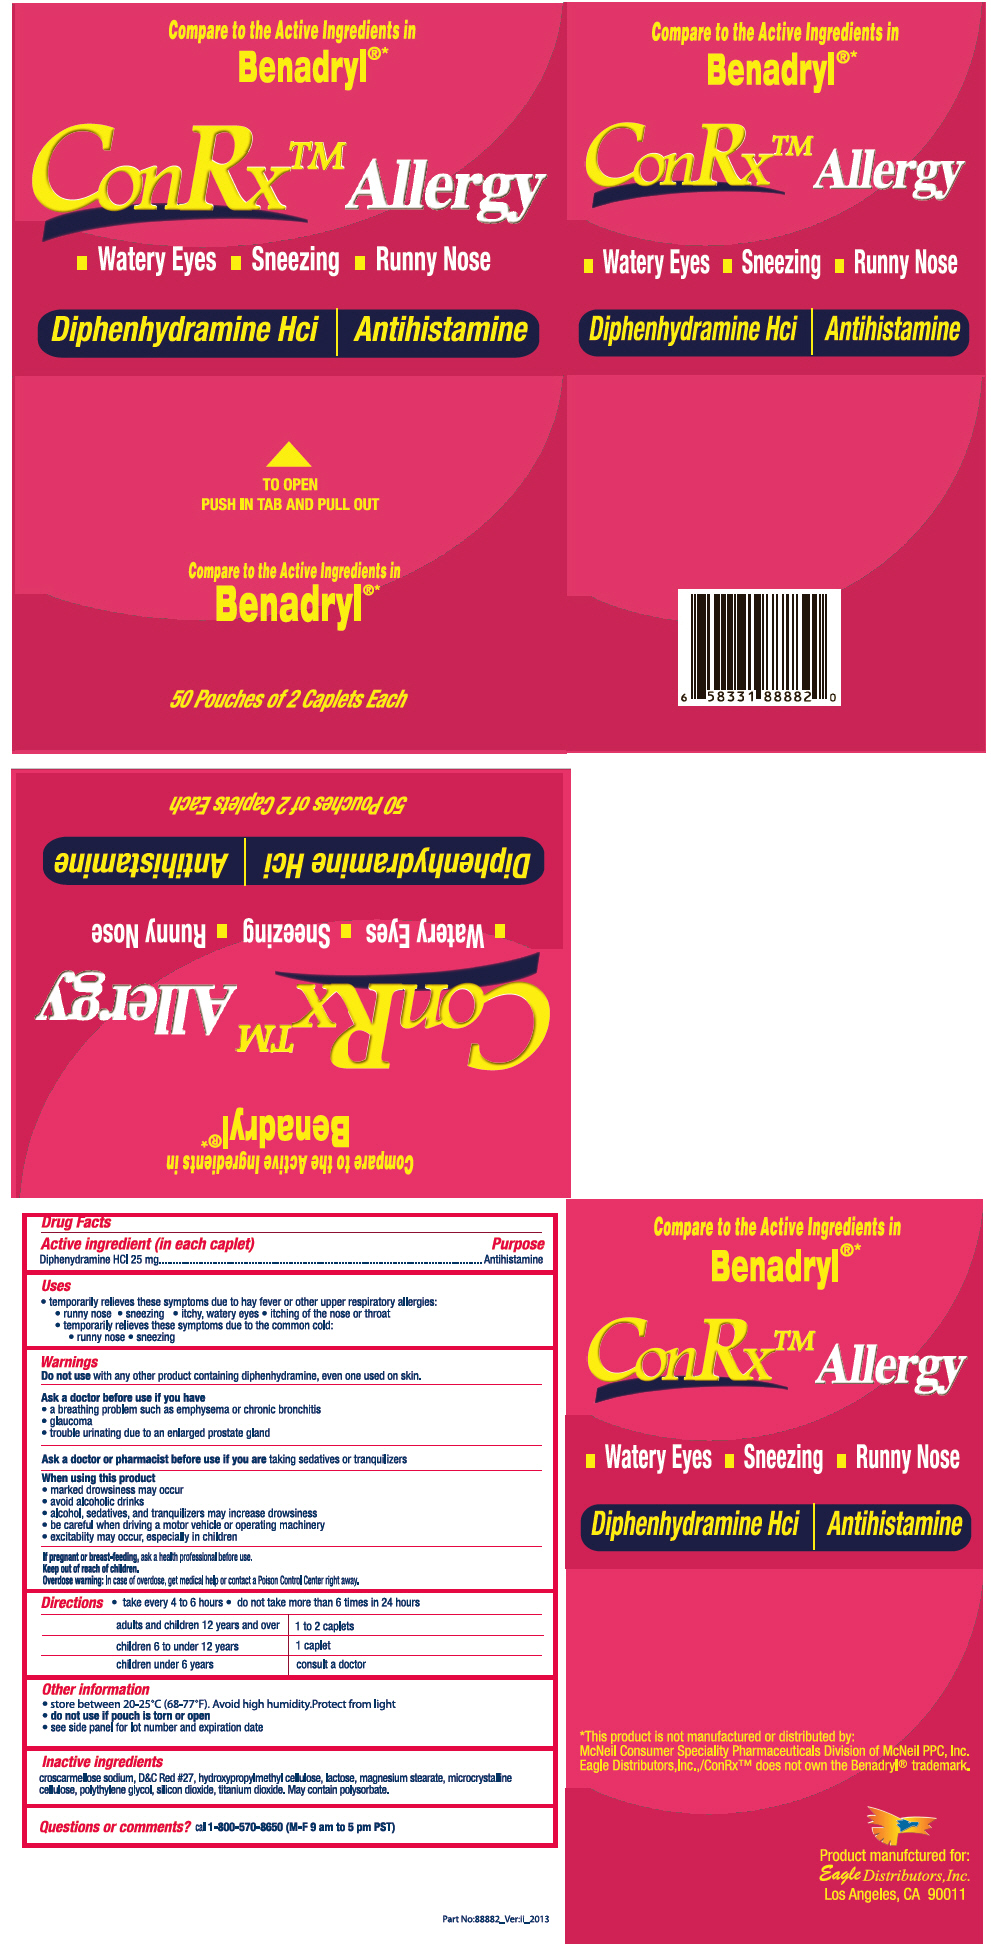 Conrx Allergy (Diphenhydramine Hydrochloride) Tablet [Eagle Distributors,inc.]